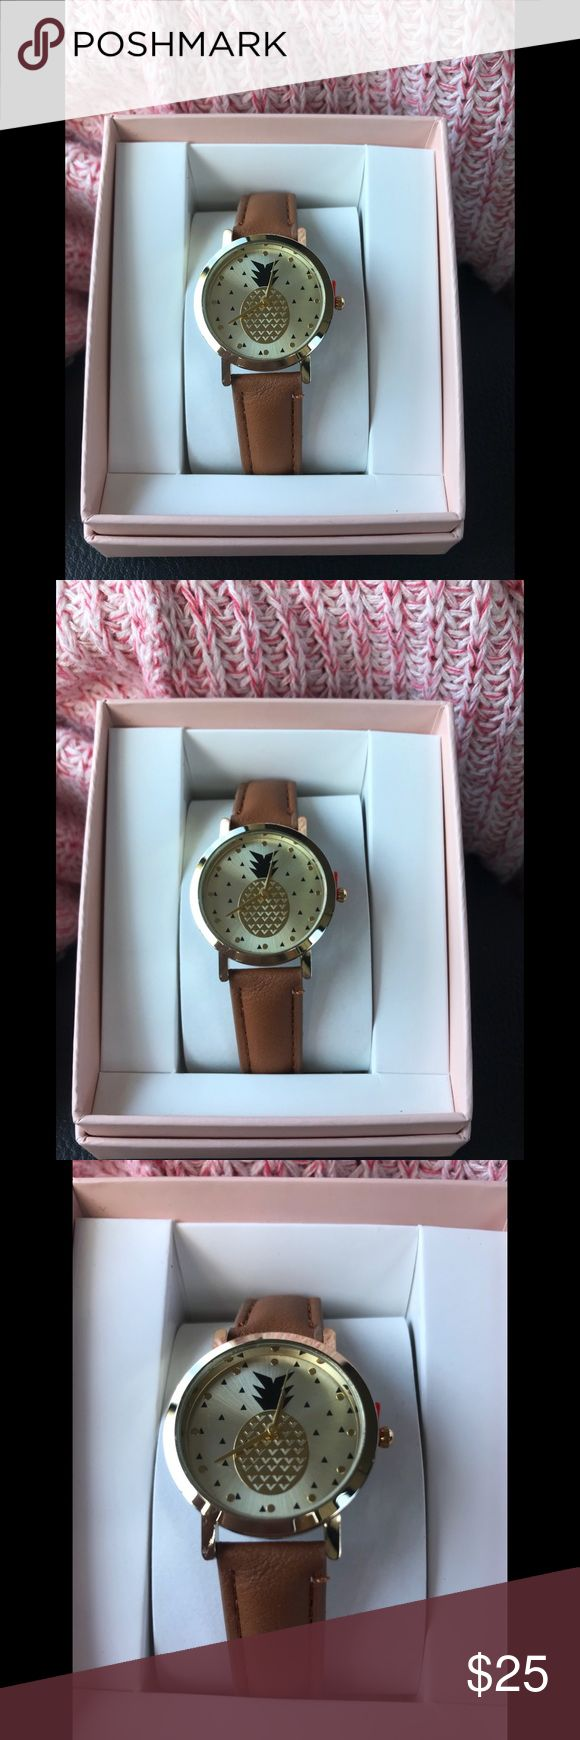 Geneva Gold Plated Analog Pineapple Watch Brand new with box. Geneva Gold Plated Analog Watch with faux leather band & Pineapple face!   This watch will definitely spice your wardrobe up, whether it's for work, career wear or just everyday use this will definitely add some fun to your everyday look 💋   Never taken out of the box!! In flawless condition!  There is however, a 1-year warranty included just in case anything happens later on. Bundle & Save! check out my other jewelry!! Accepting…